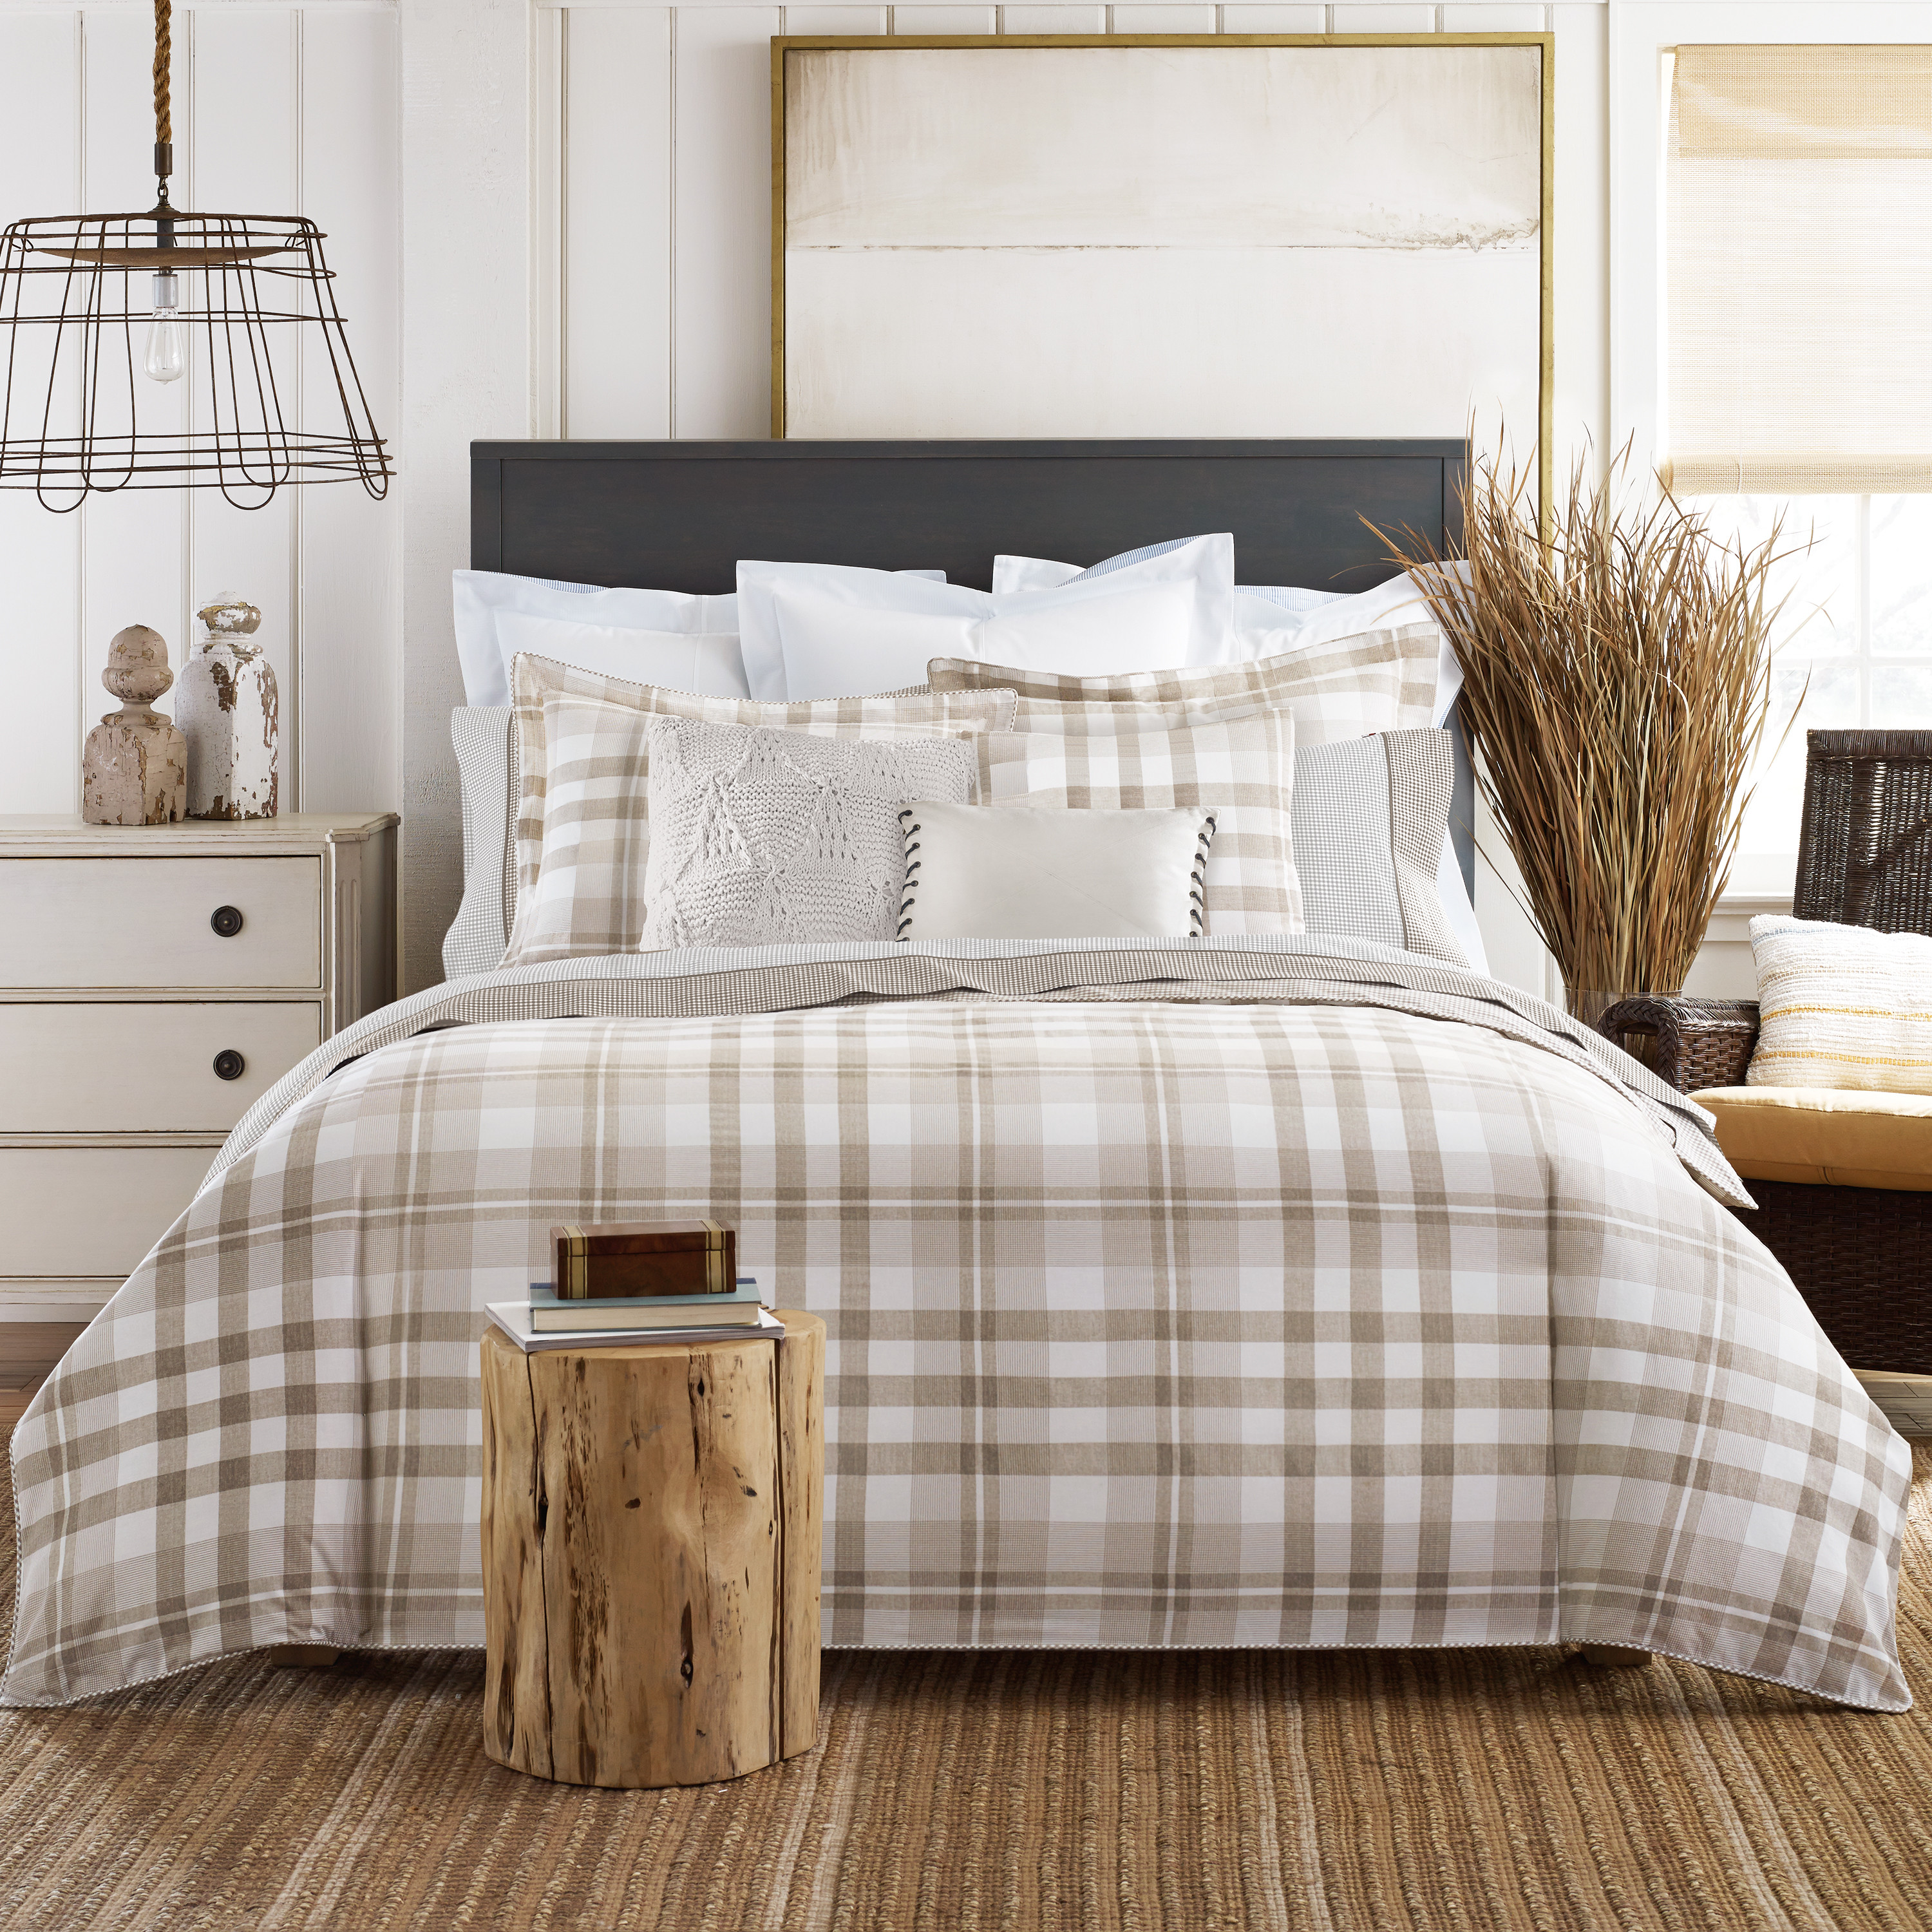 Cozy plaid comforter with rugs and wooden floor plus headboard and sidetable also pillows